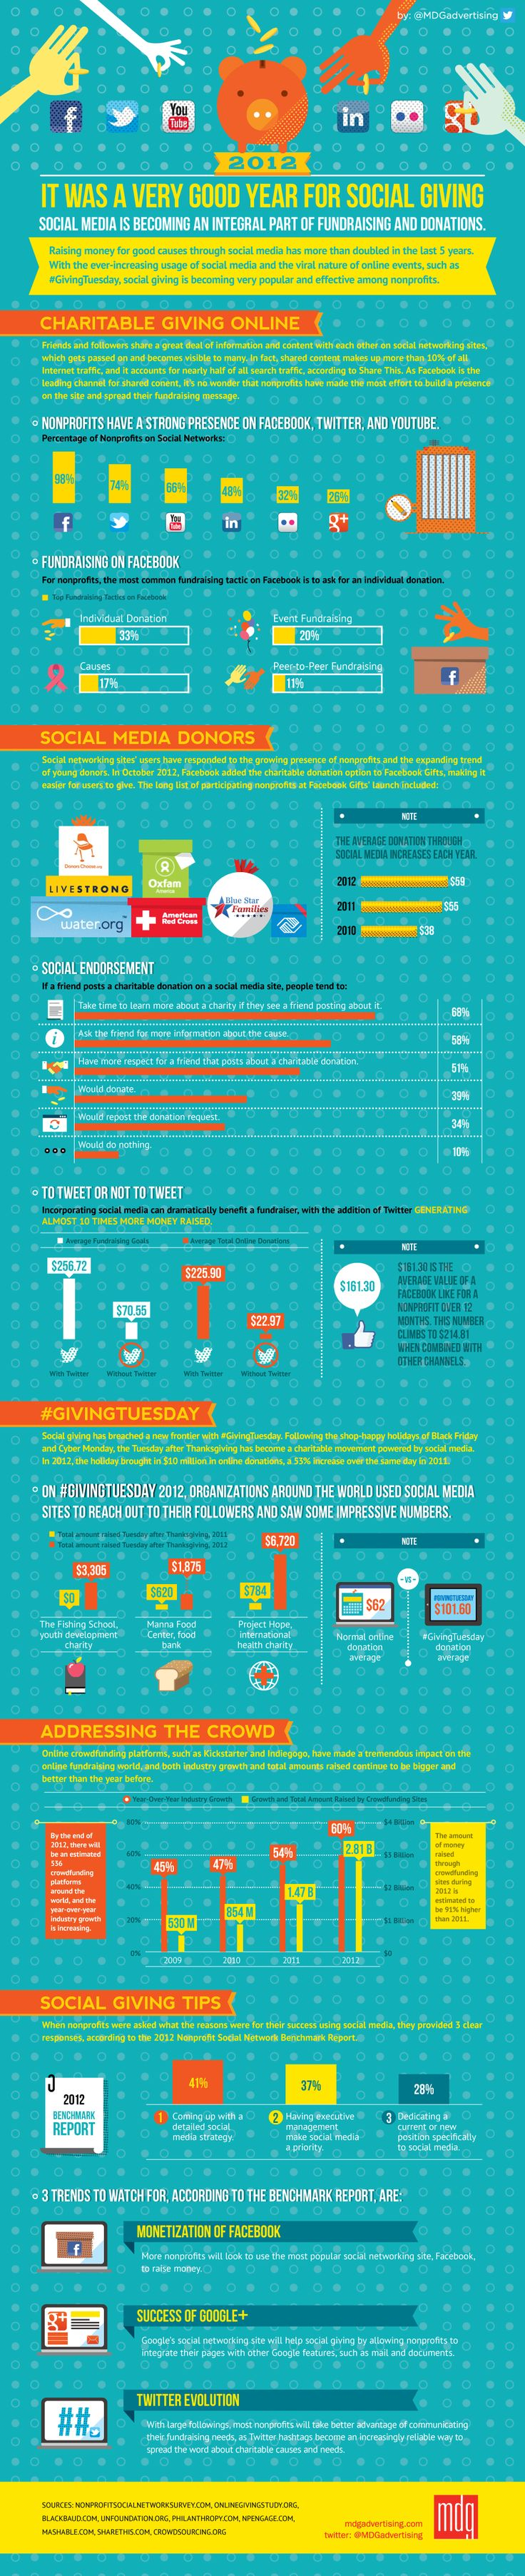 2012: It Was a Very Good Year for Social Giving [Infographic]